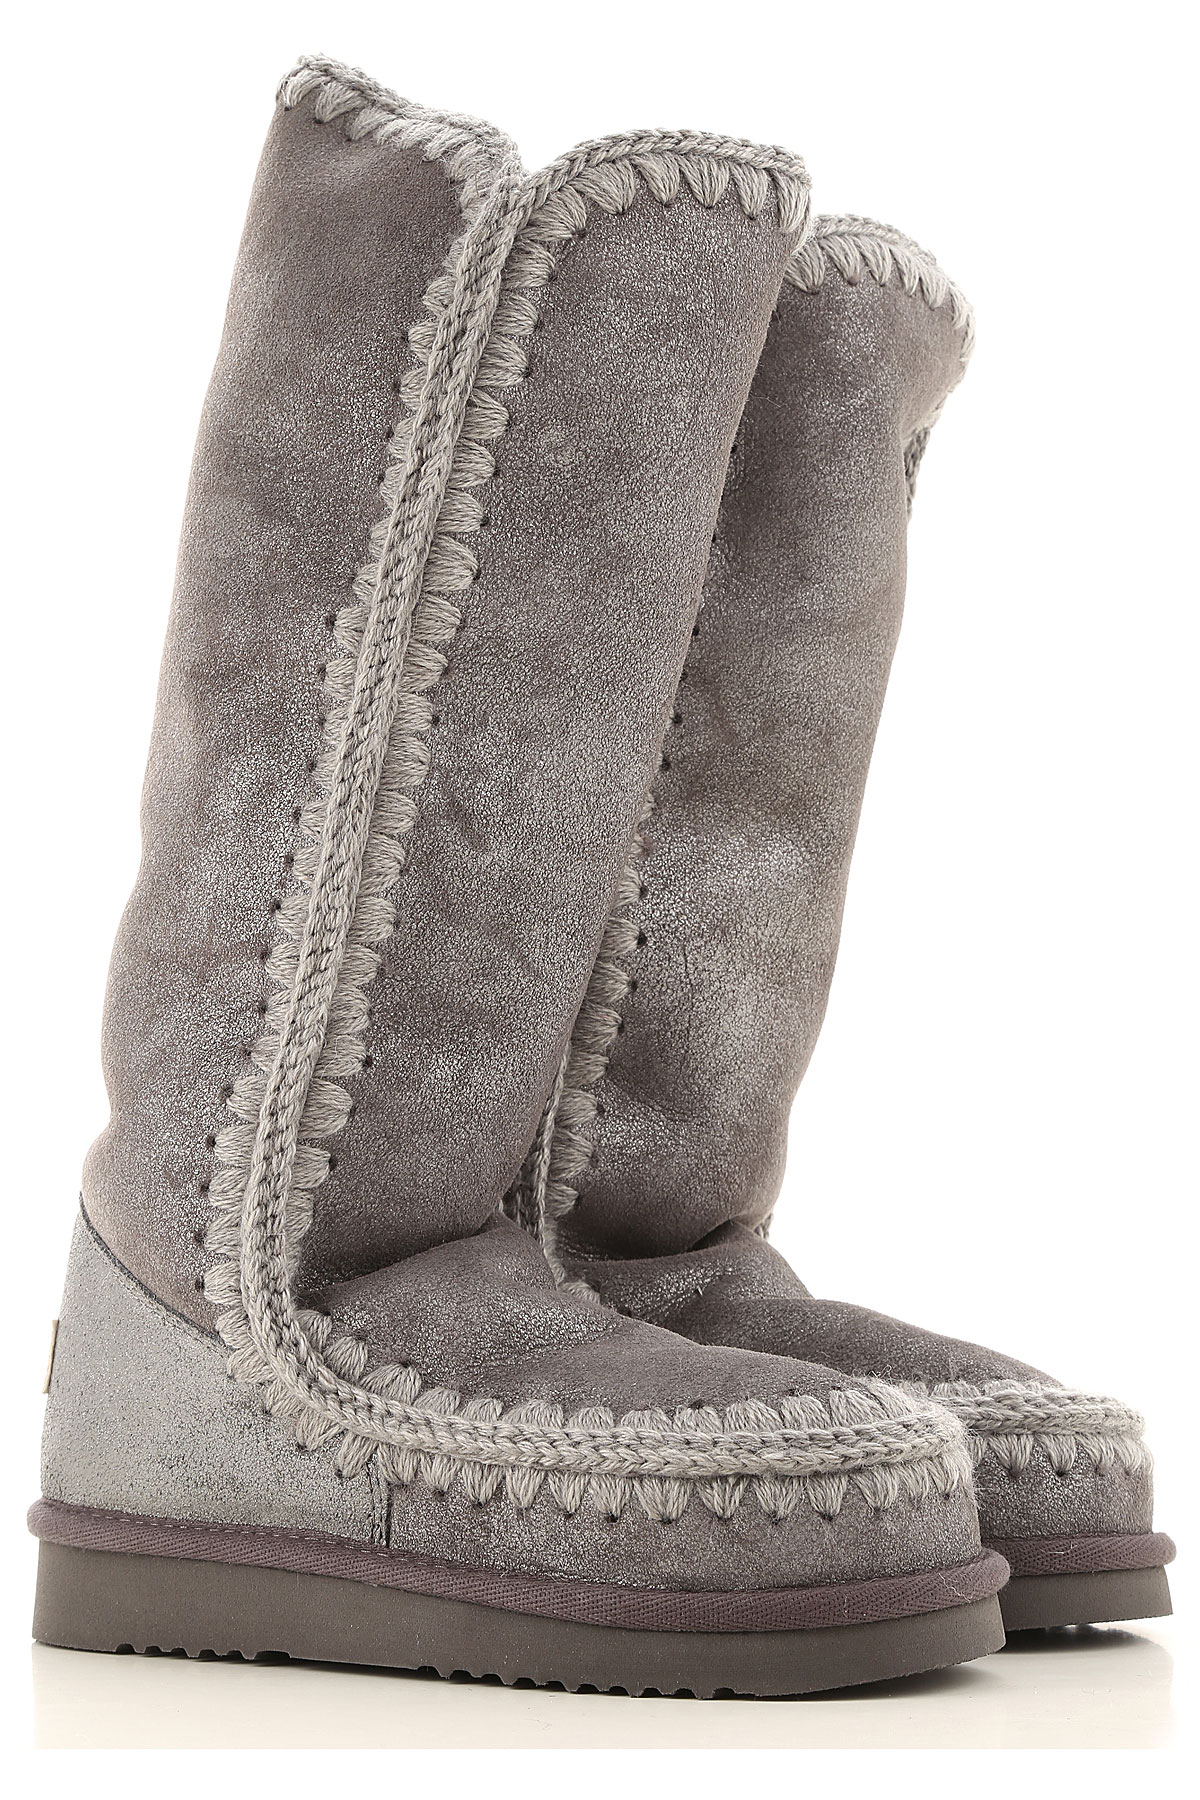 Mou Boots for Women, Booties On Sale in Outlet, Grey, Leather, 2019, EUR 36 - UK 3 - USA 5.5 EUR 37 - UK 4 - USA 6.5 EUR 39 - UK 6 - USA 8.5 EUR 40 -